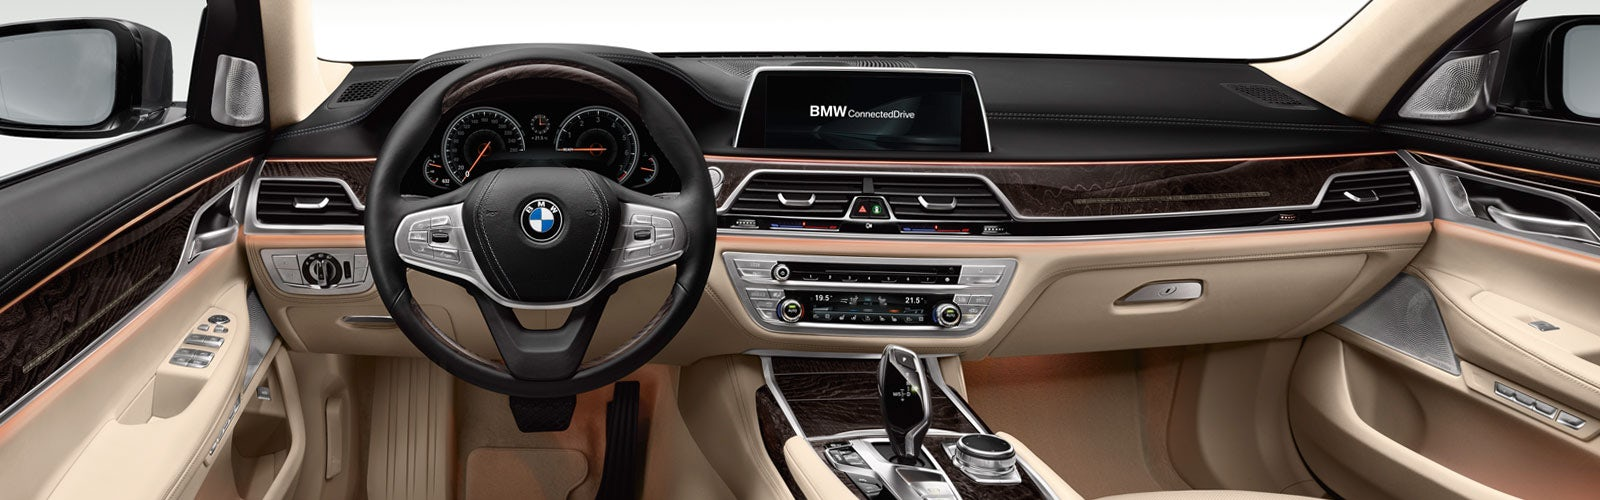 The Interior Could Borrow Some Elements From Current 7 Series Shown Here